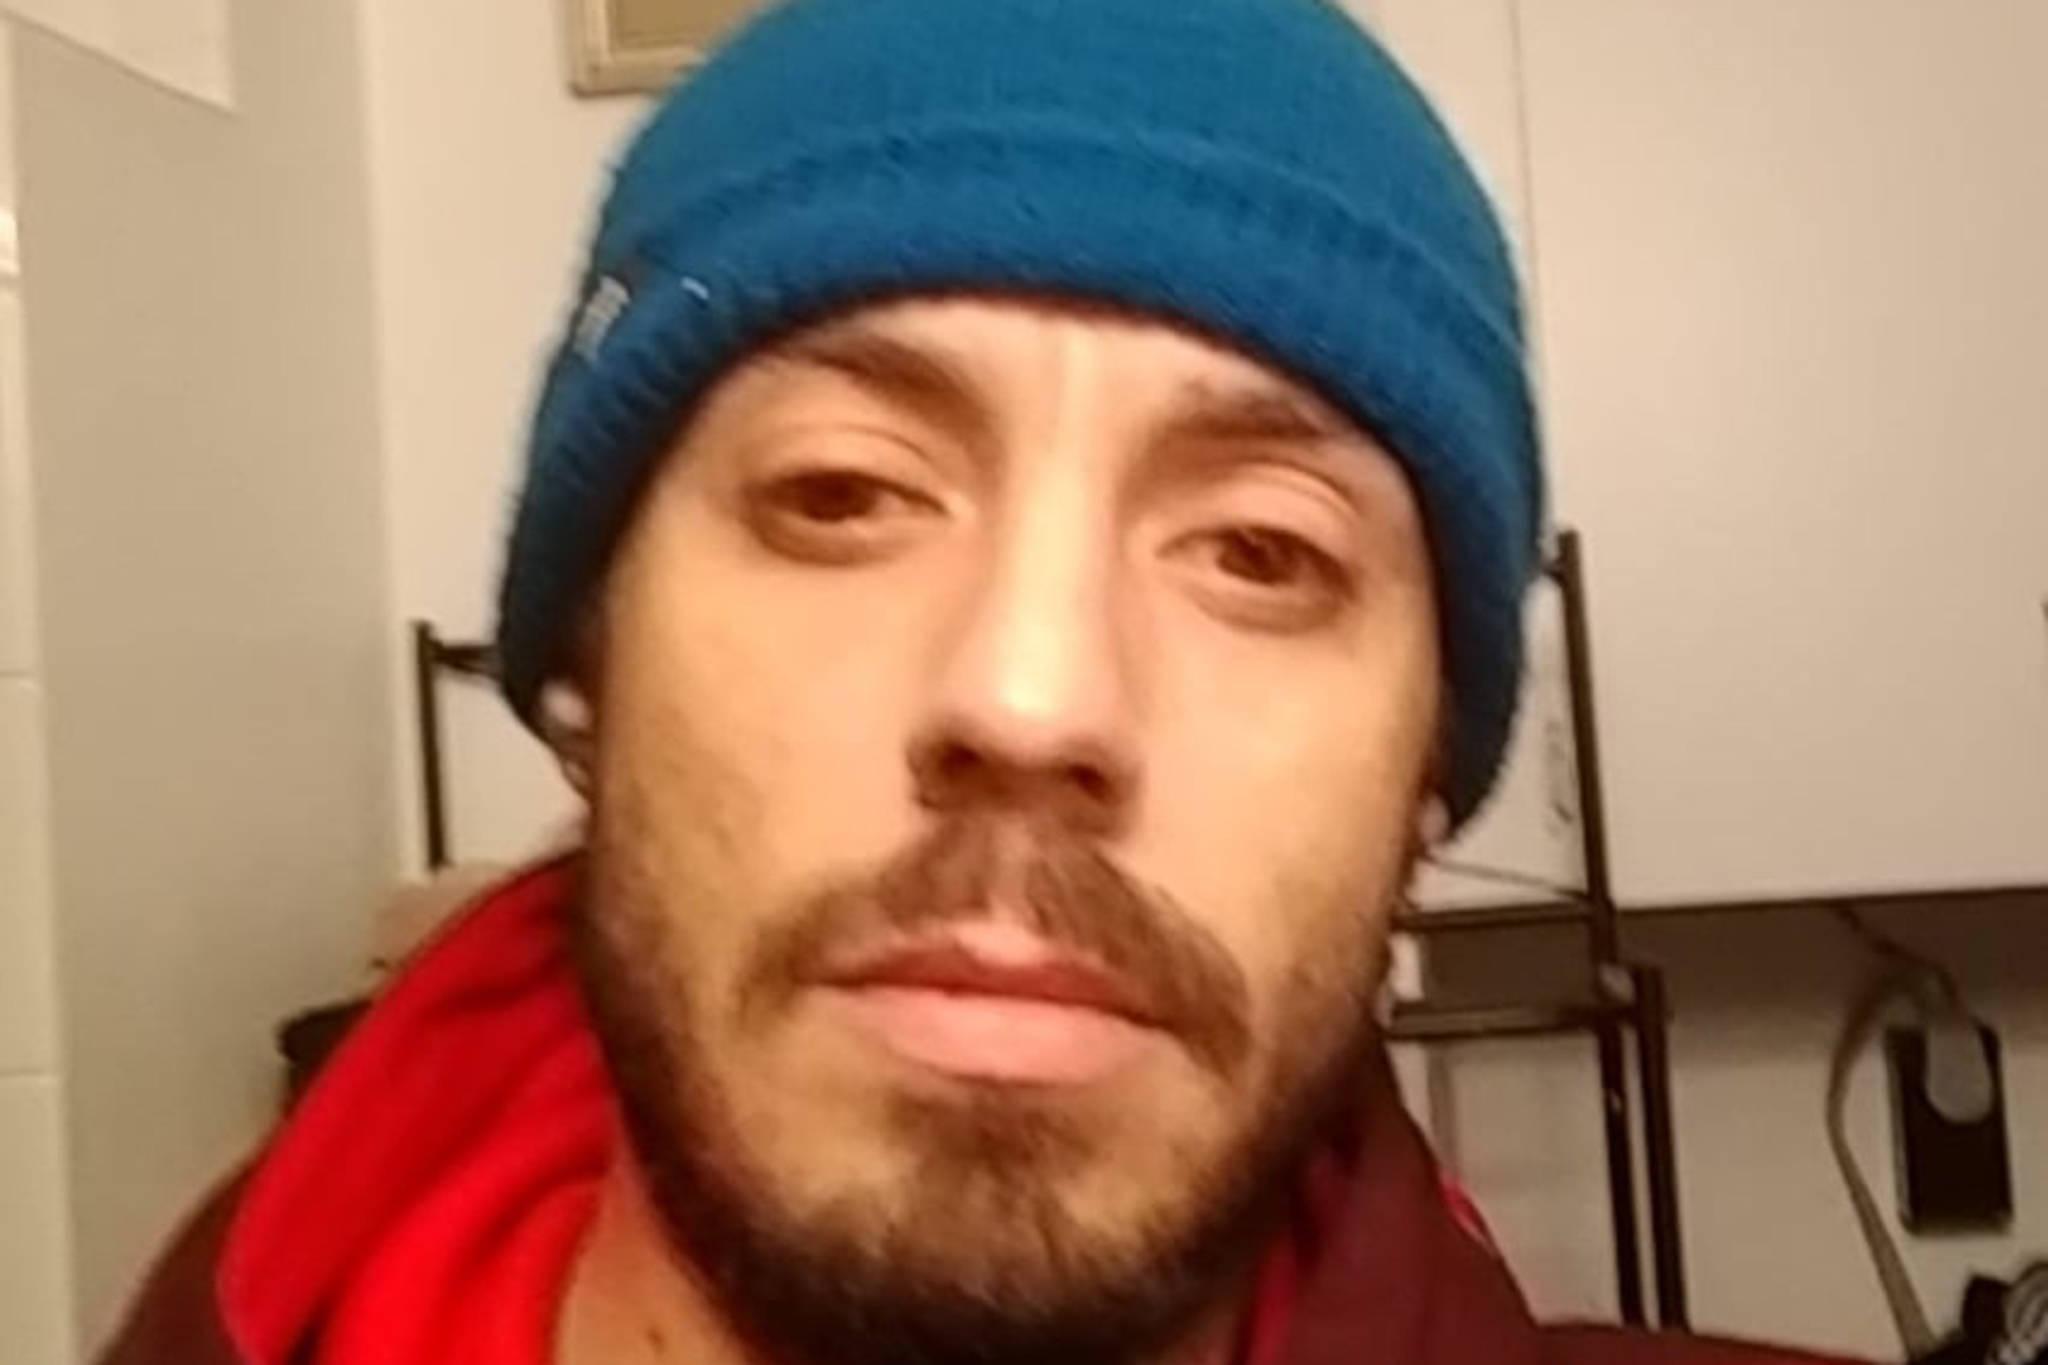 """This photo shows Joseph """"Joey"""" Ryan Schultz who police say has multiple outstanding warrants related to violating the conditions of his release. (Courtesy Photo / Juneau Police Department)"""